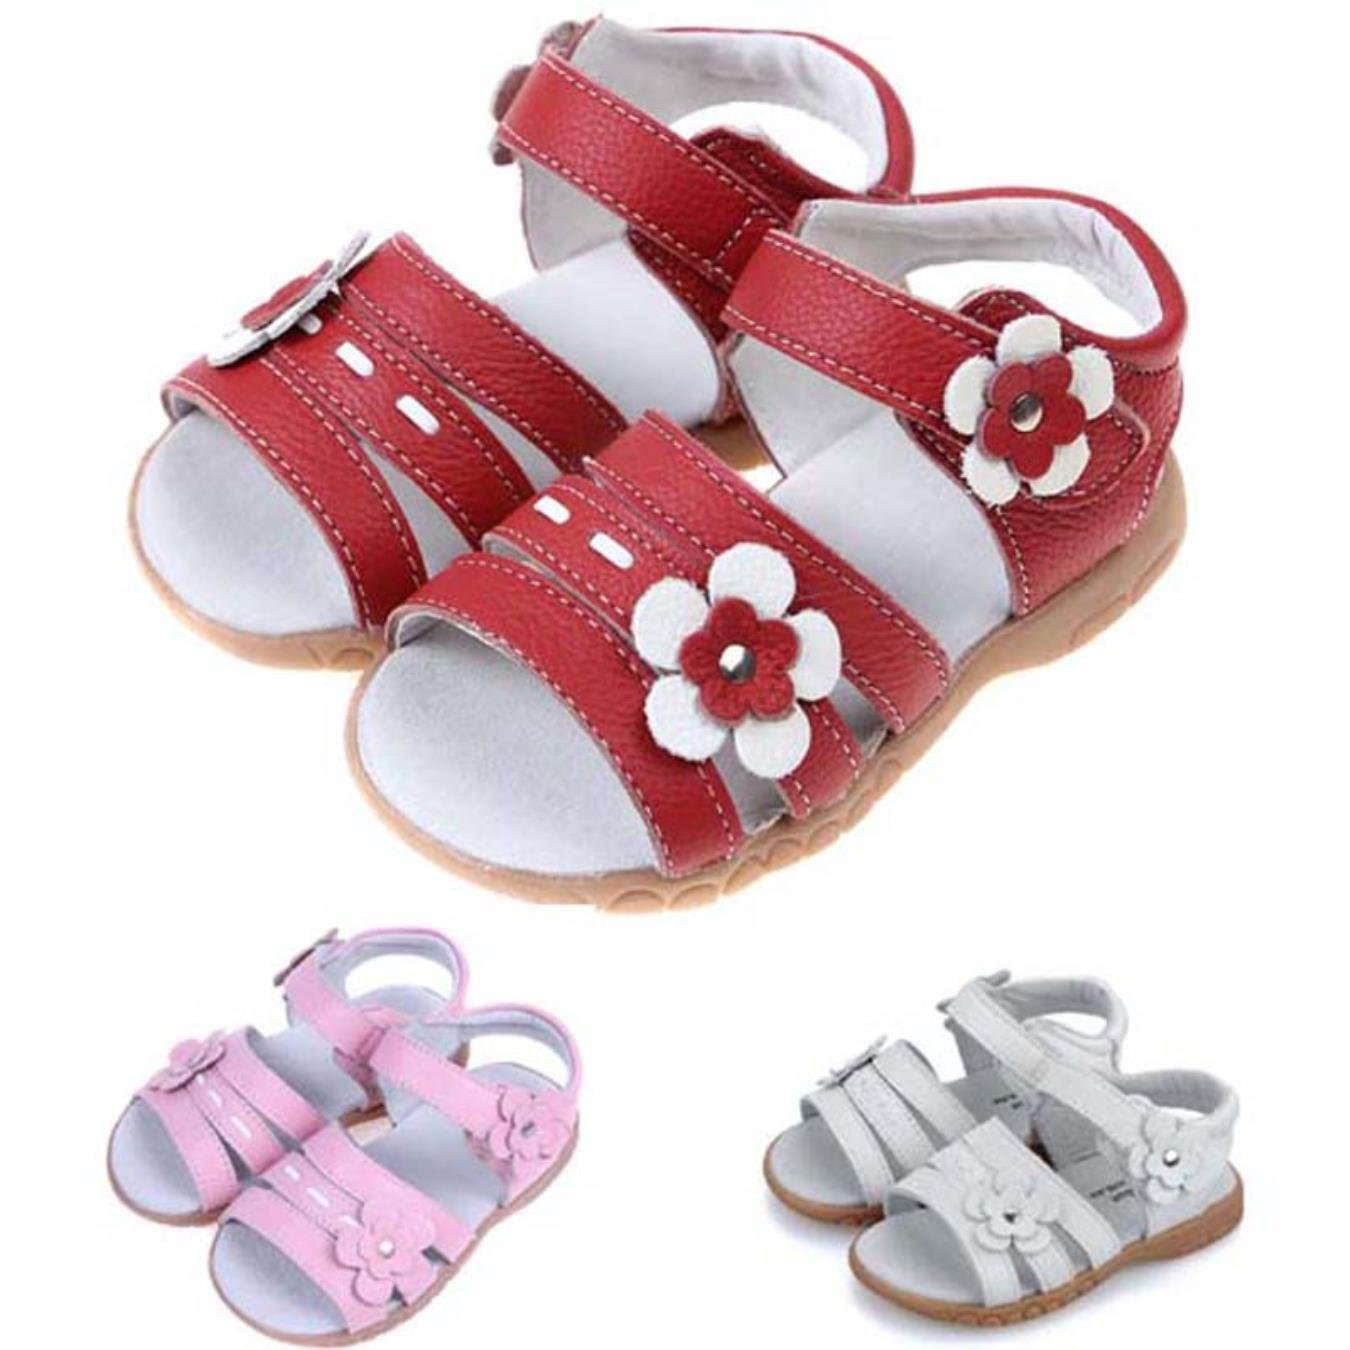 Summer Genuine Leather Sandals Girls Princess Shoes Breathable Baby Girls Sandals